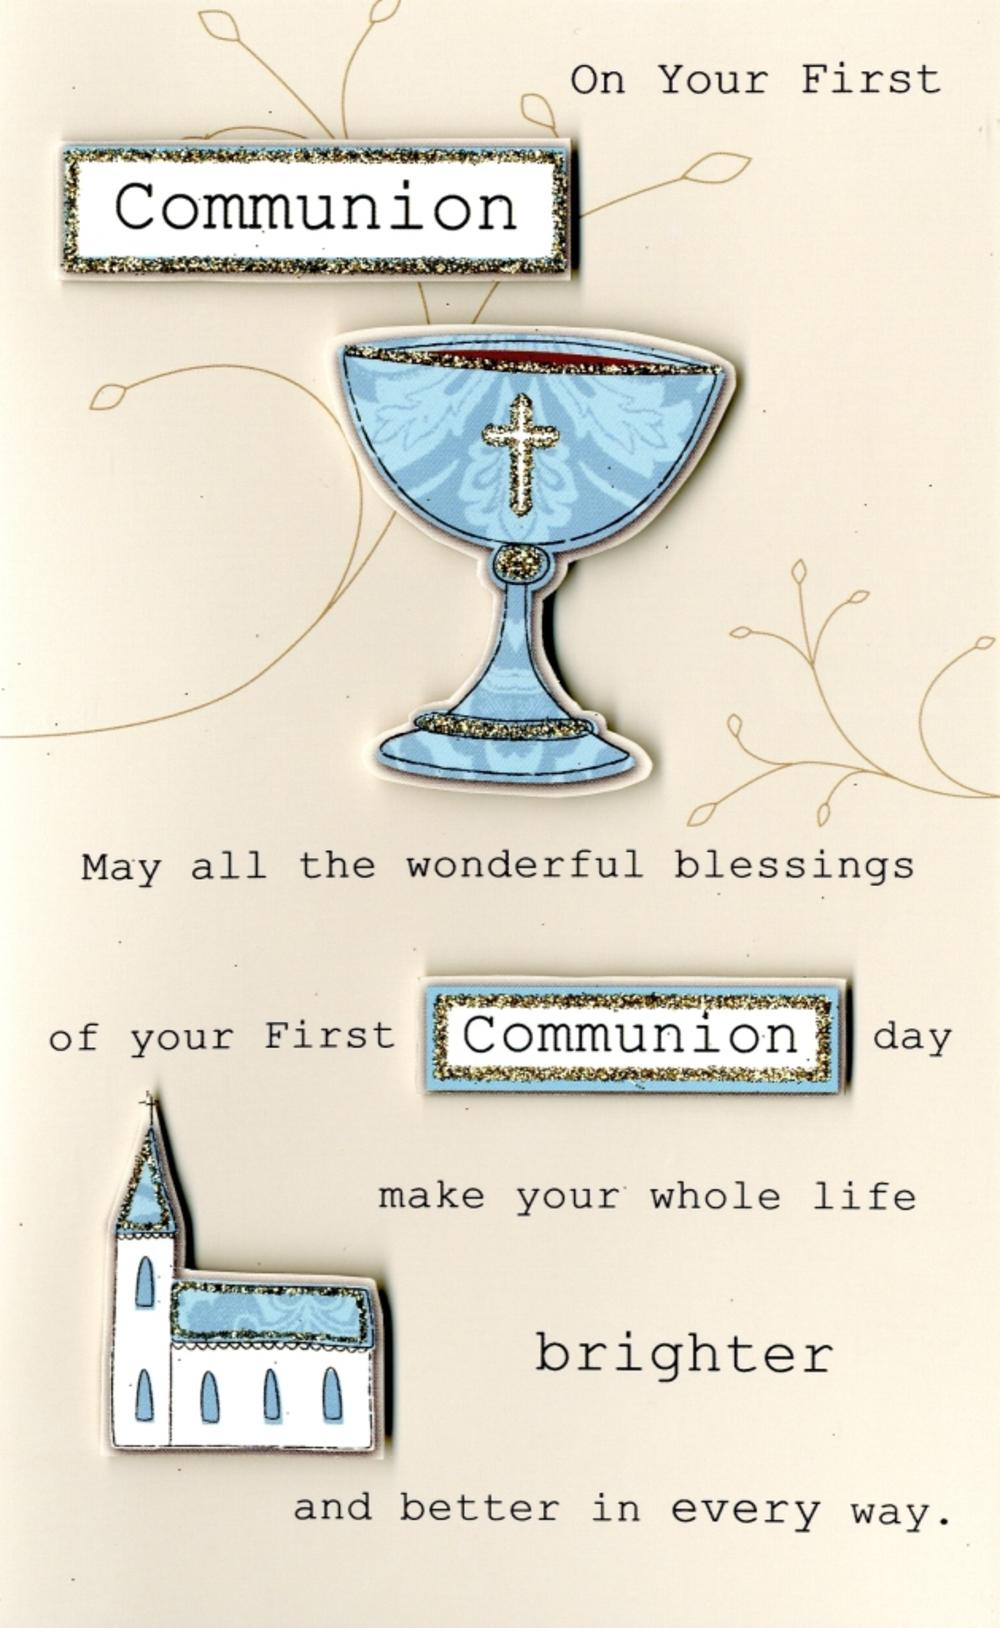 First communion embellished greeting card cards love kates first communion embellished greeting card kristyandbryce Image collections